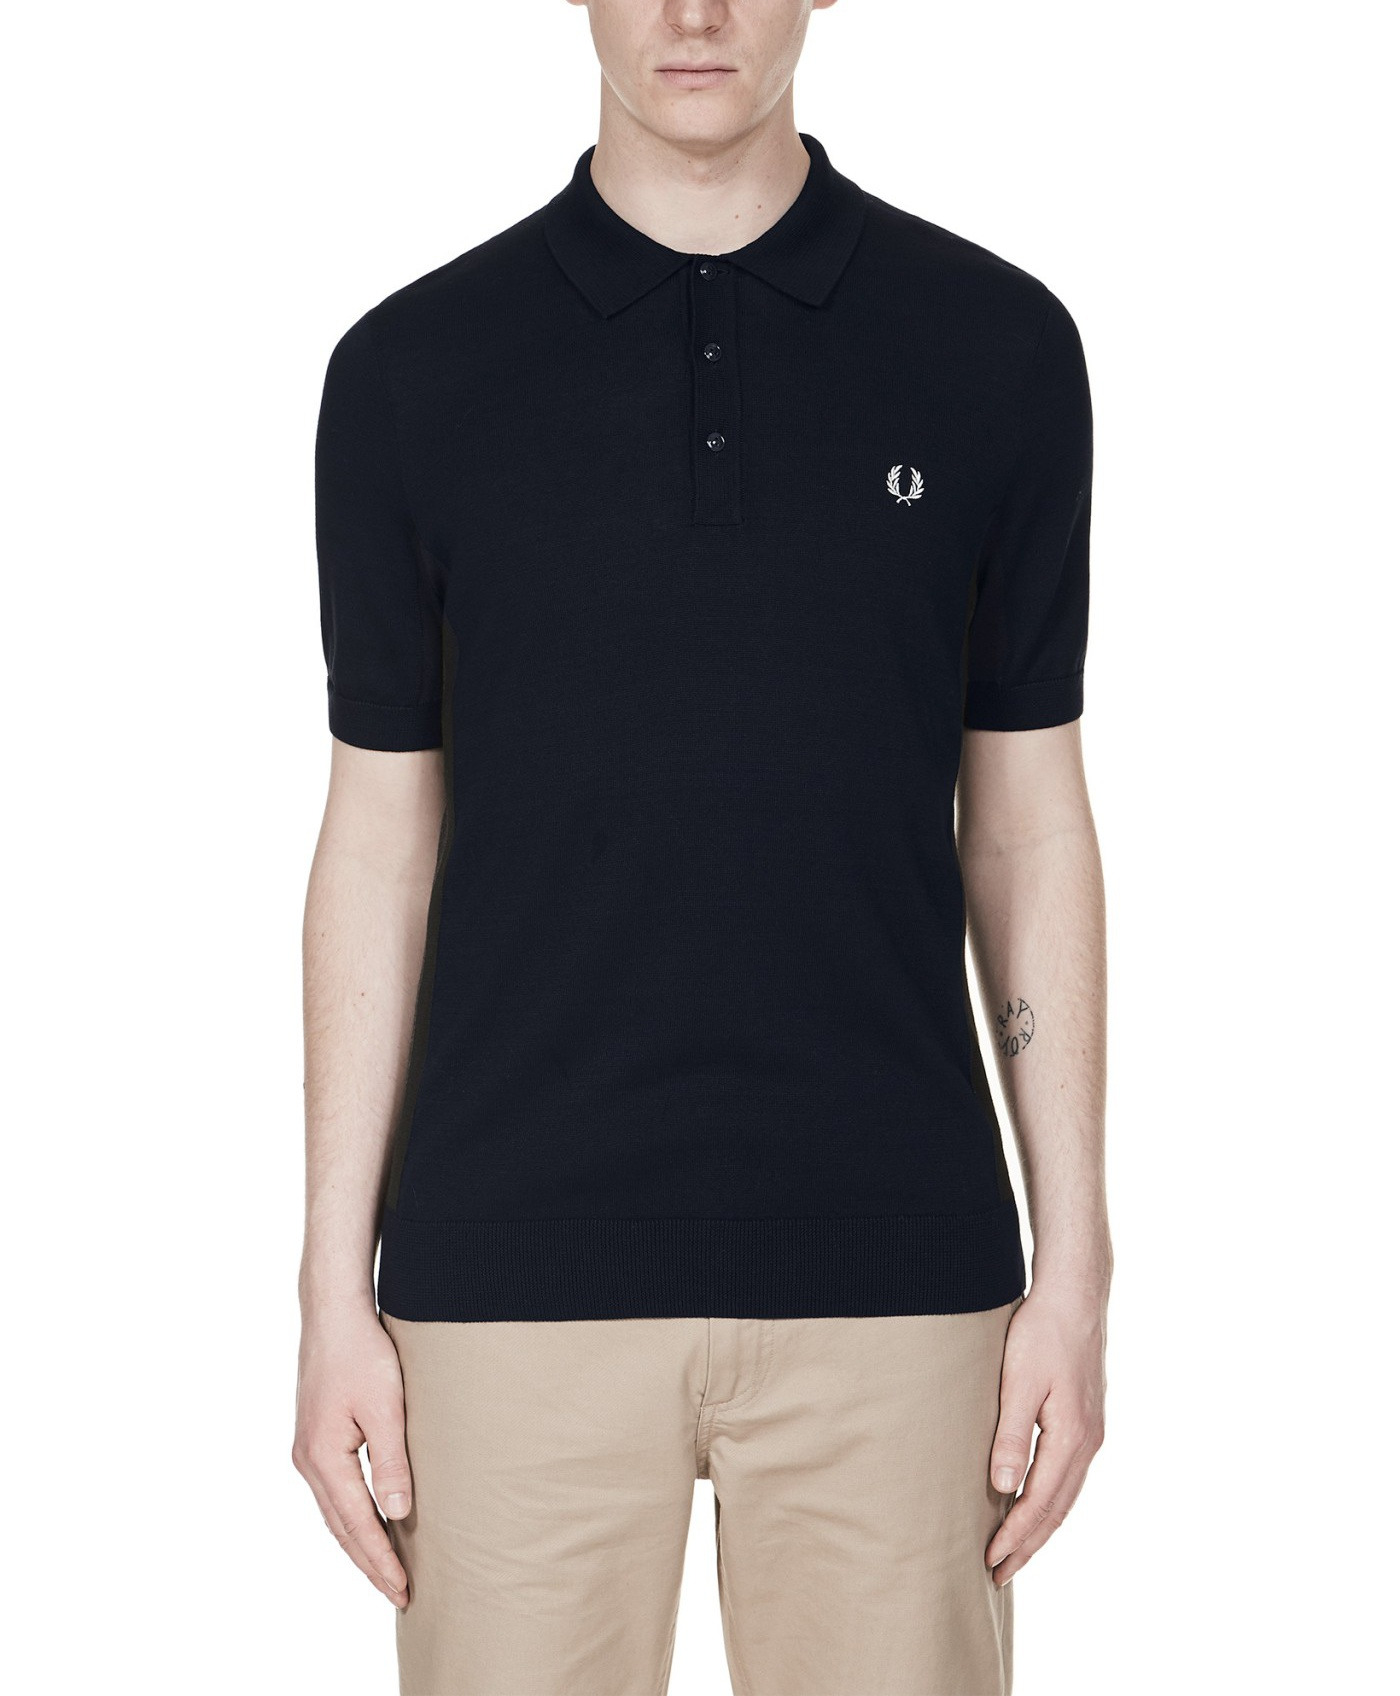 Fred Perry Striped Panel Knitted Shirt